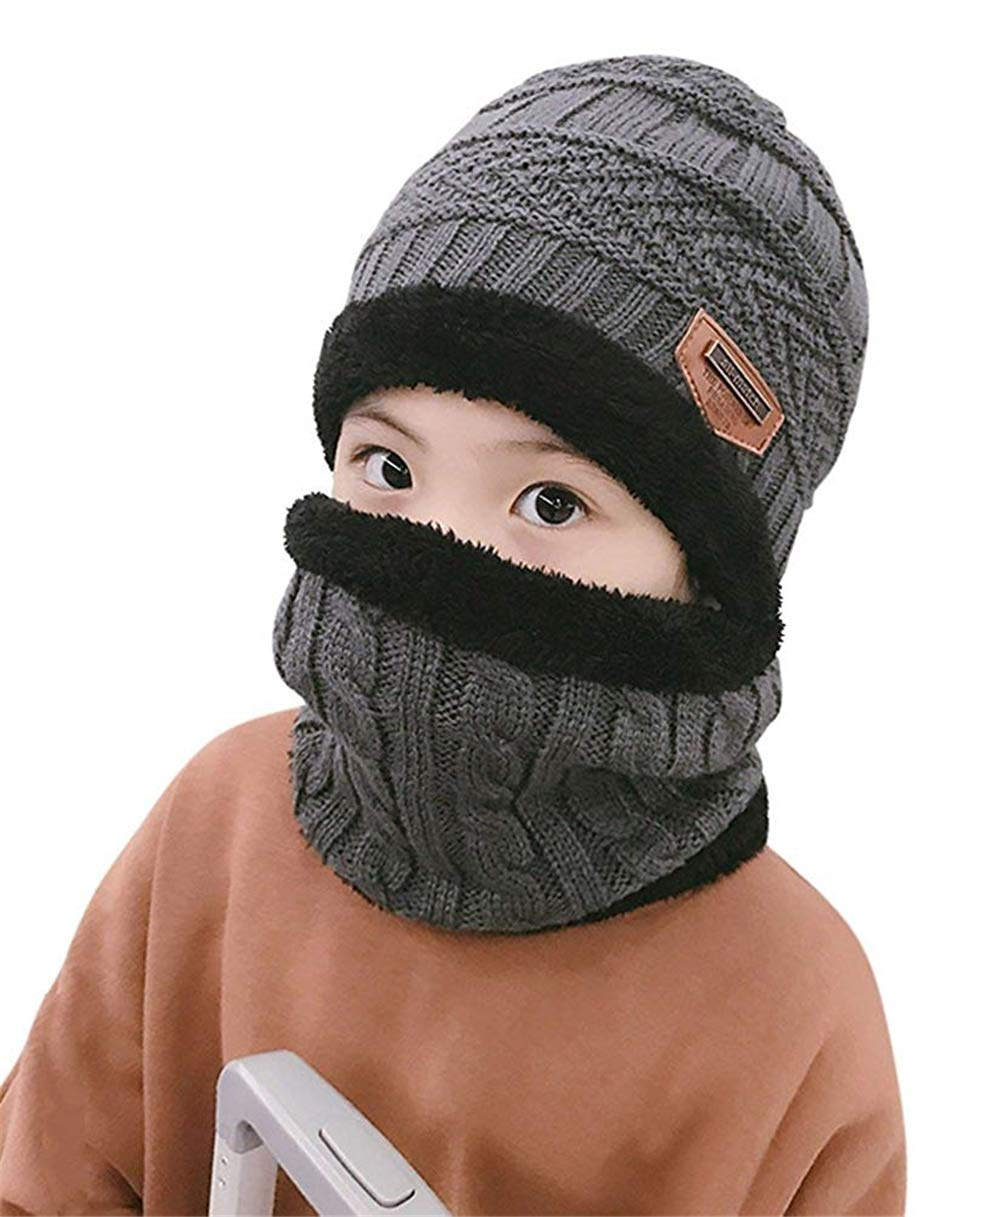 80f899f4fdb 2Pcs Boys Girls Knitted Hat and Scarf Set Winter Warm Beanie Slouchy Skull  Cap for 6